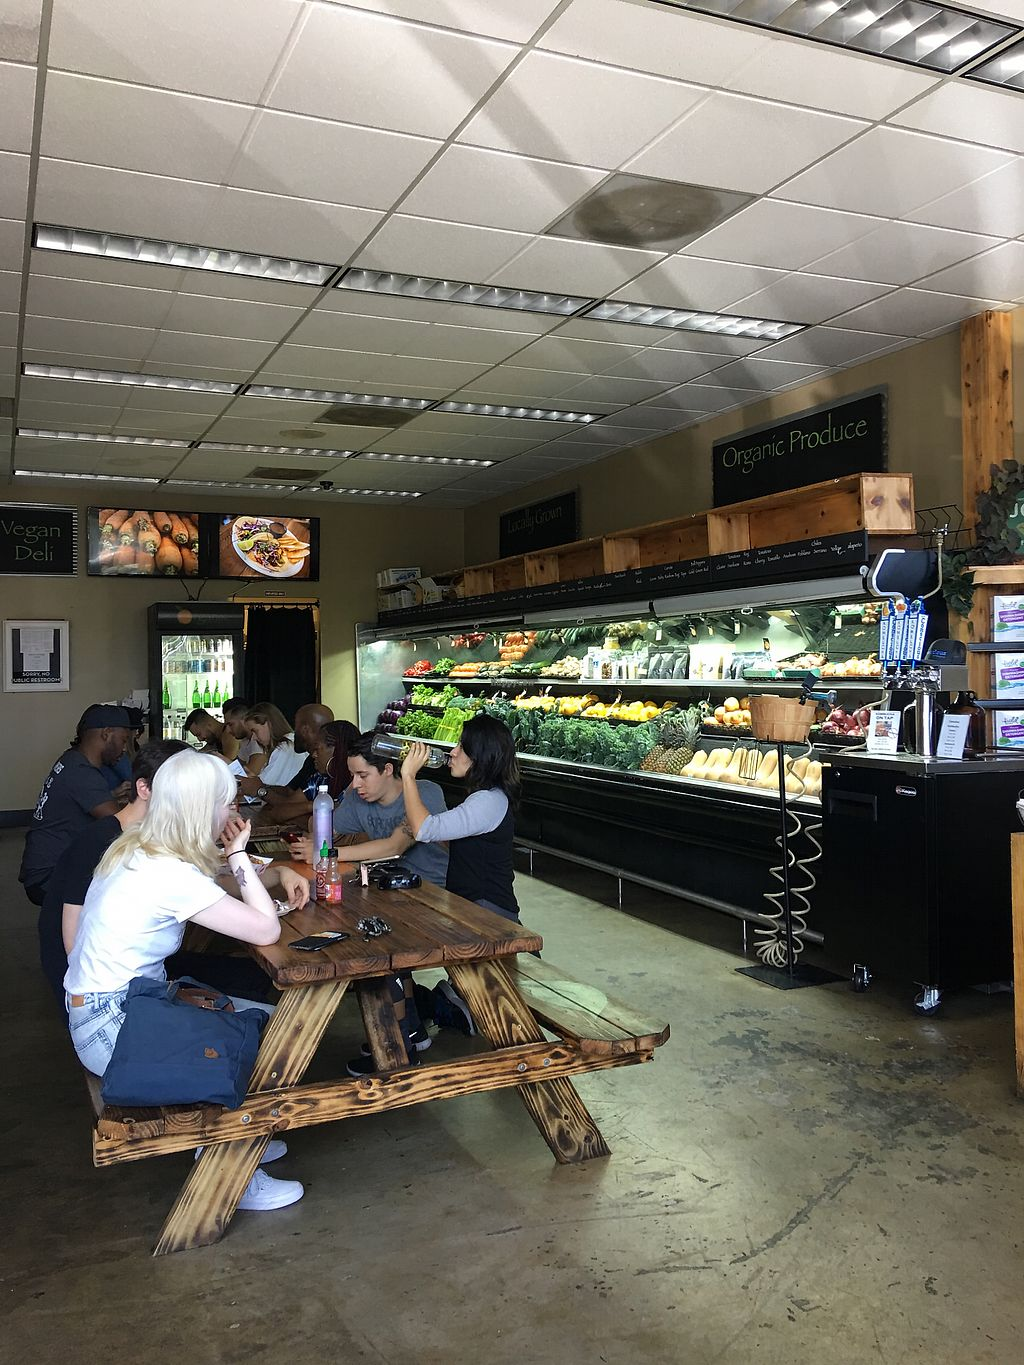 """Photo of Organix Vegan Deli  by <a href=""""/members/profile/Wallice"""">Wallice</a> <br/>Eating area  <br/> September 9, 2017  - <a href='/contact/abuse/image/41816/302745'>Report</a>"""